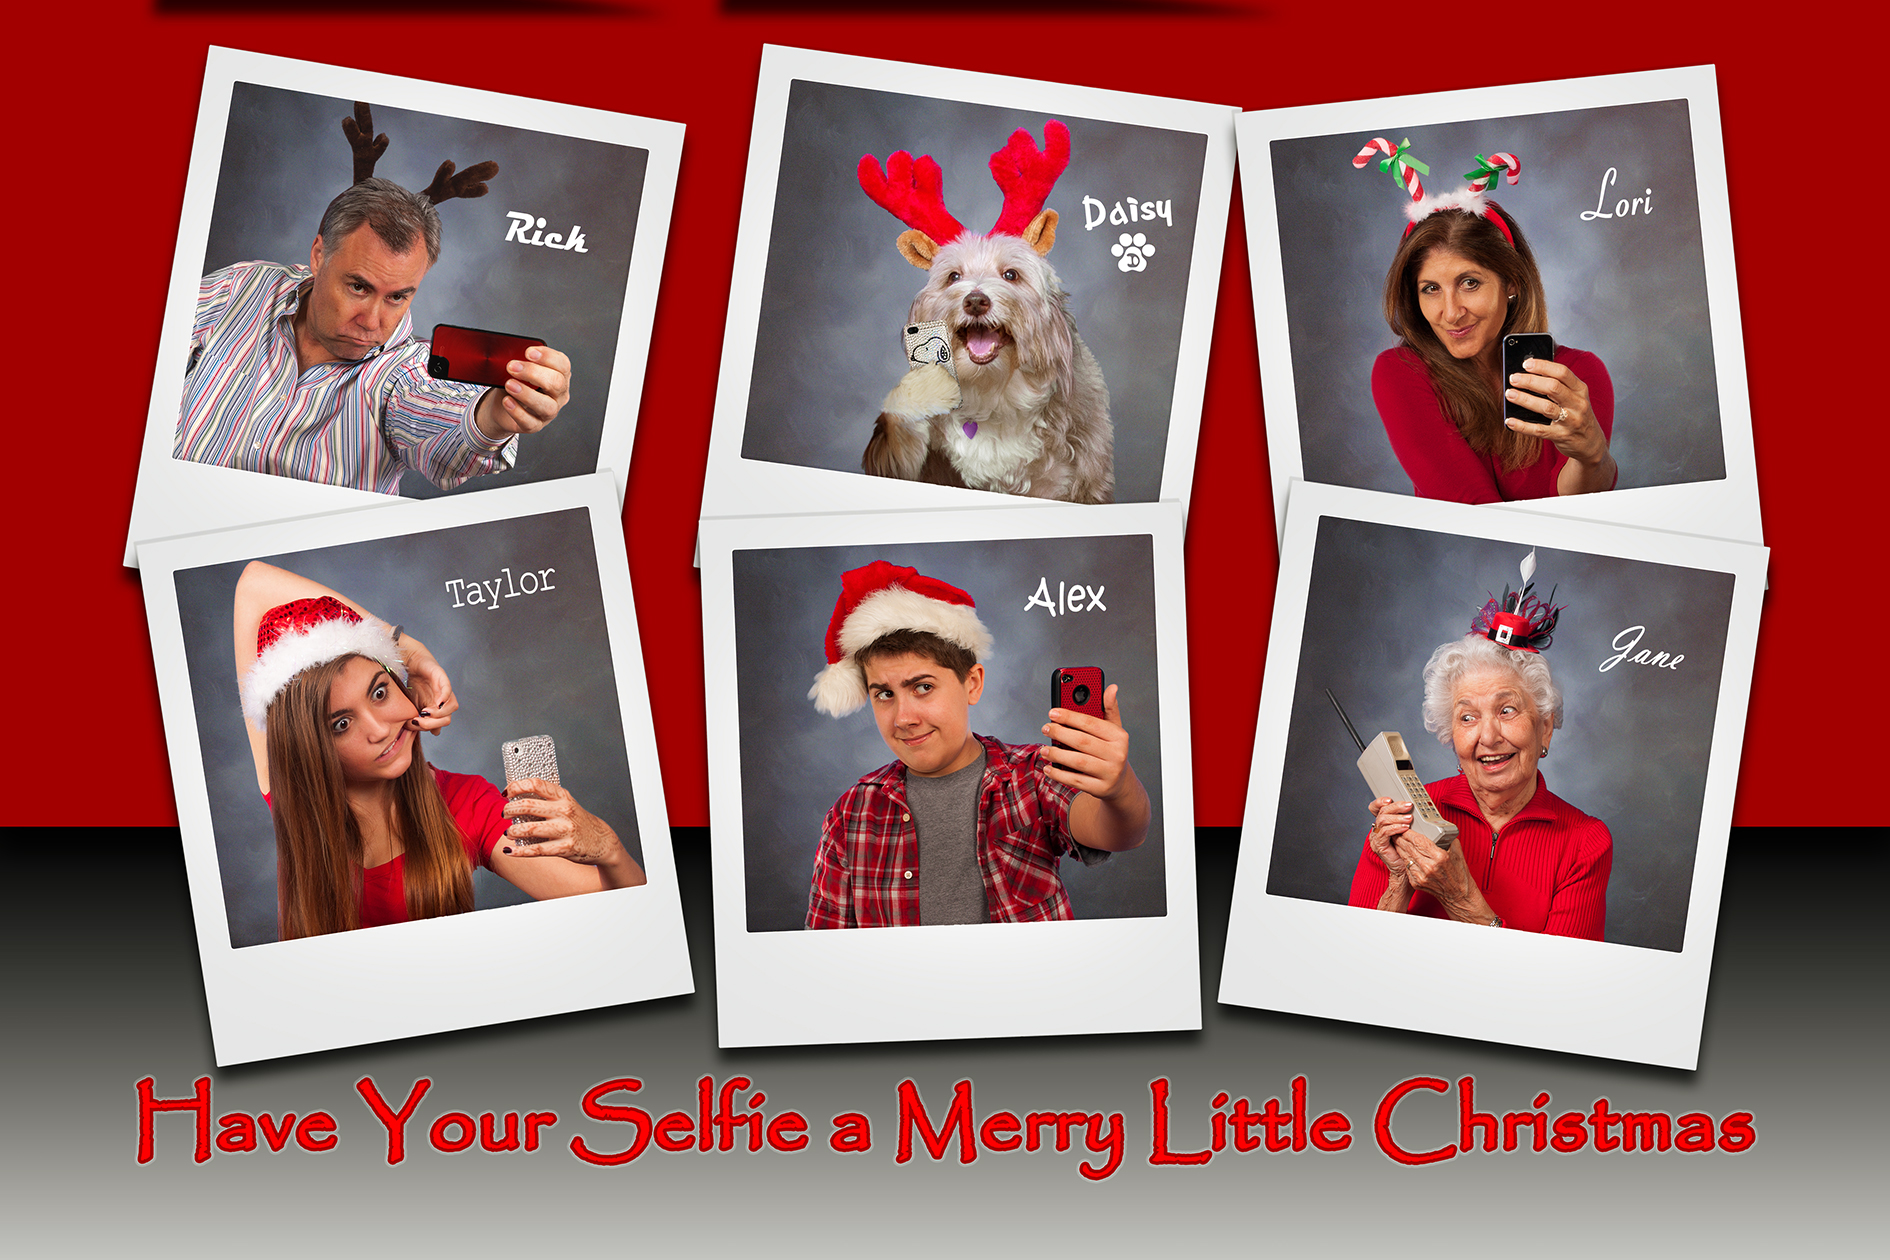 The holidays are a time to bring family together. What better way to spread holiday cheer than with these original family Christmas card photo ideas - including great outfit ideas for family pictures. The 8 Best Family Christmas Card Photo Ideas for sure! 😉 is creative inspiration for us.